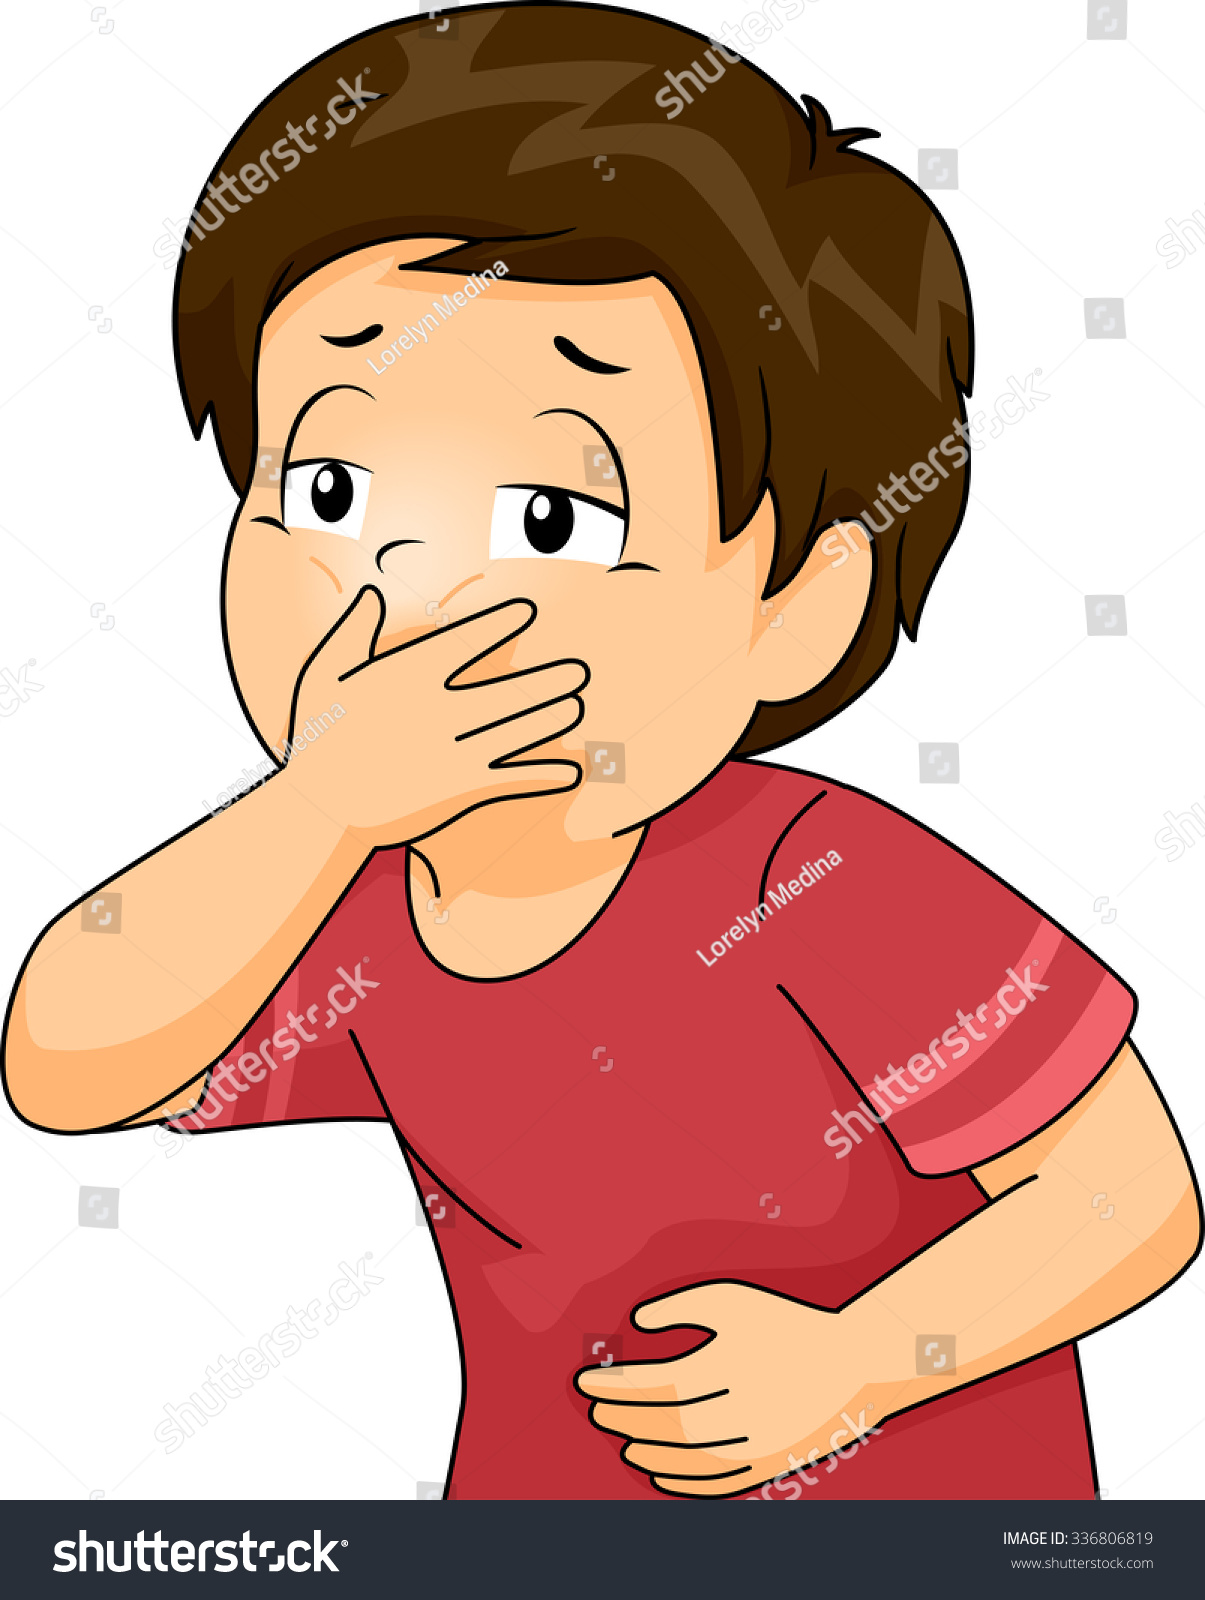 Illustration Of A Little Boy About To Throw Up Covering His Mouth - 336806819 : Shutterstock